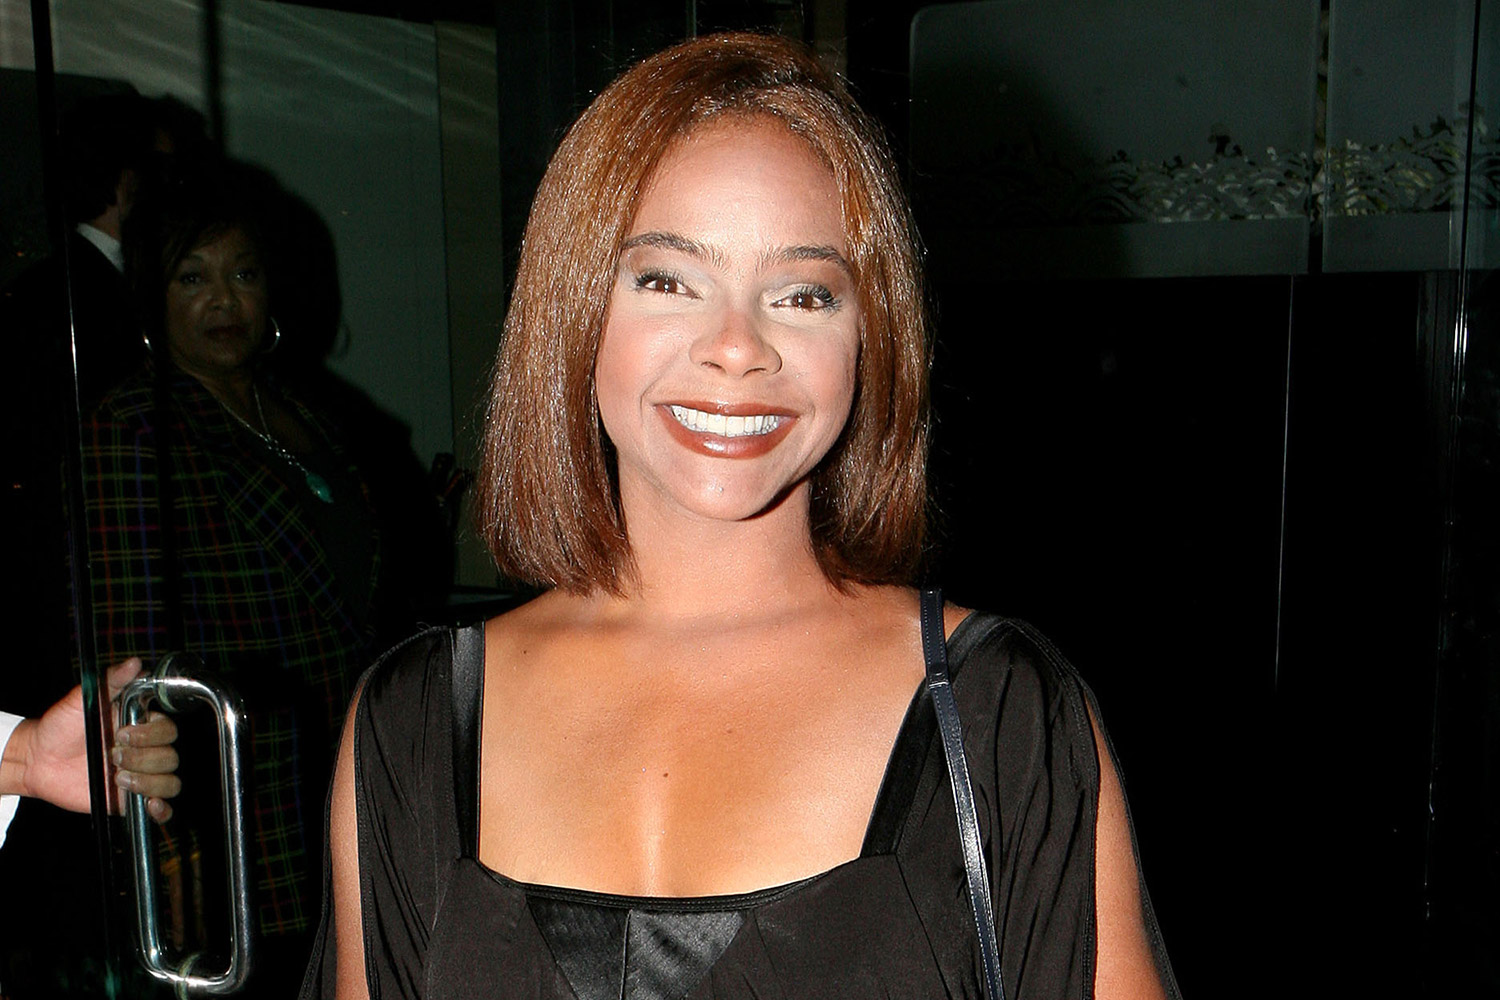 lark-voorhies-surprises-fans-by-announcing-shes-on-the-saved-by-the-bell-reboot